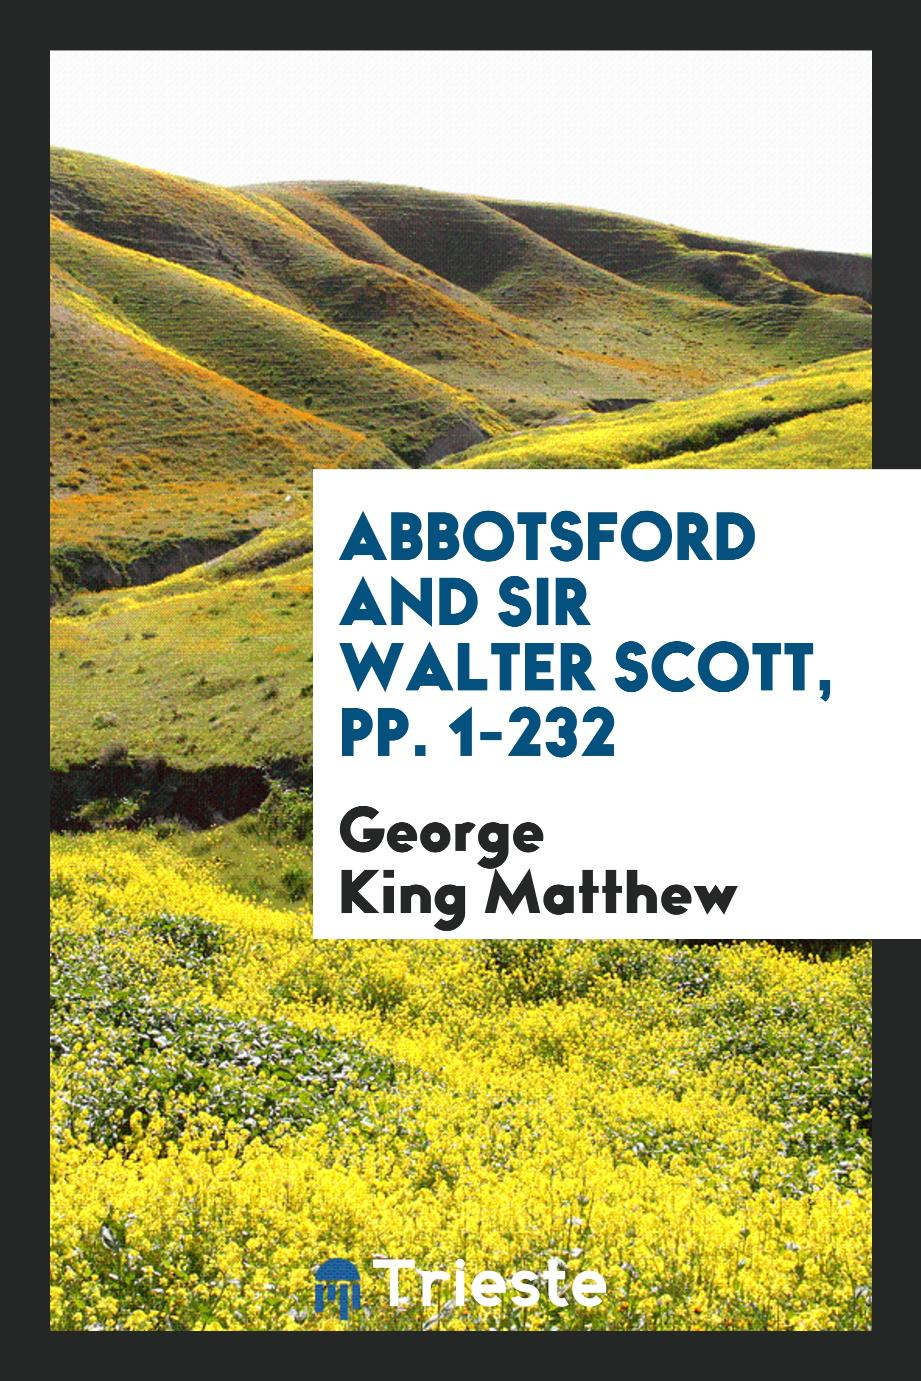 Abbotsford and Sir Walter Scott, pp. 1-232